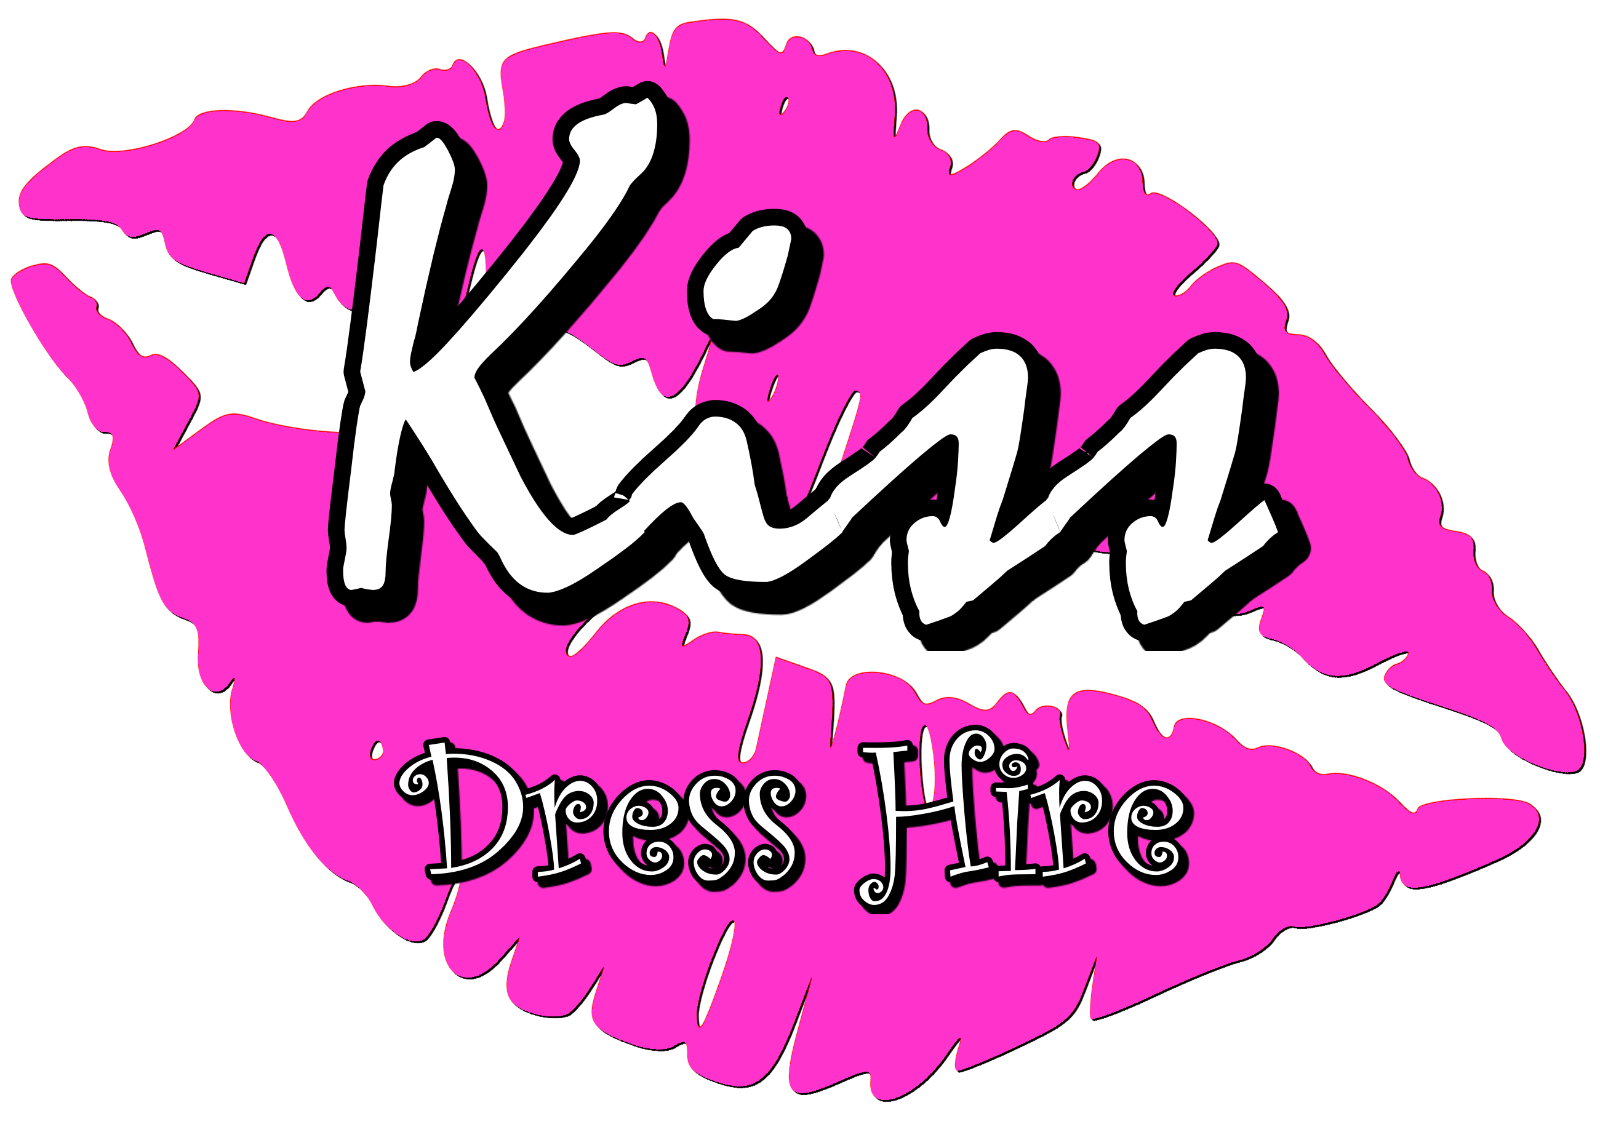 Kiss Dress Hire